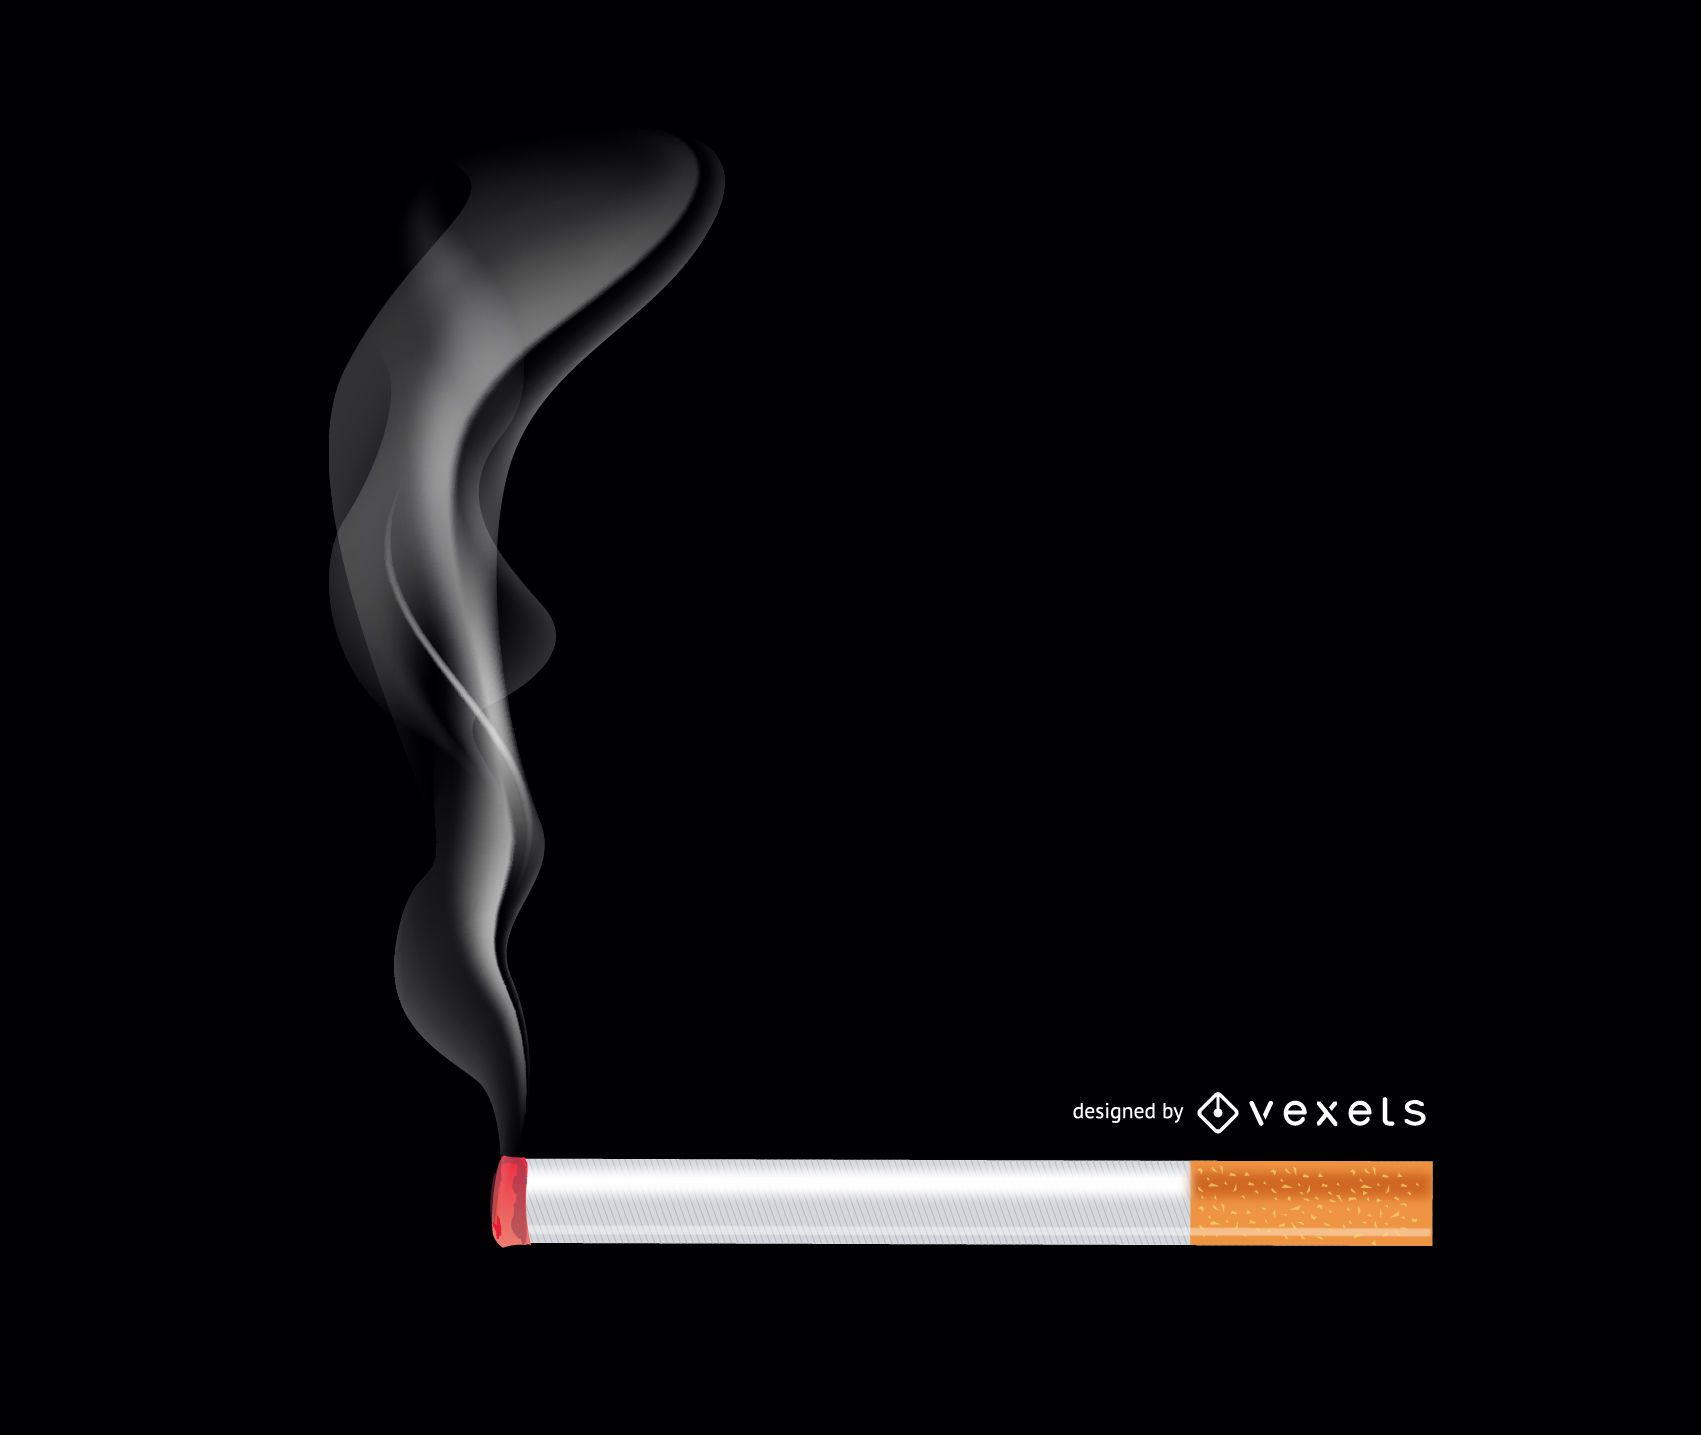 Realistic Burning Cigarette with Smokes